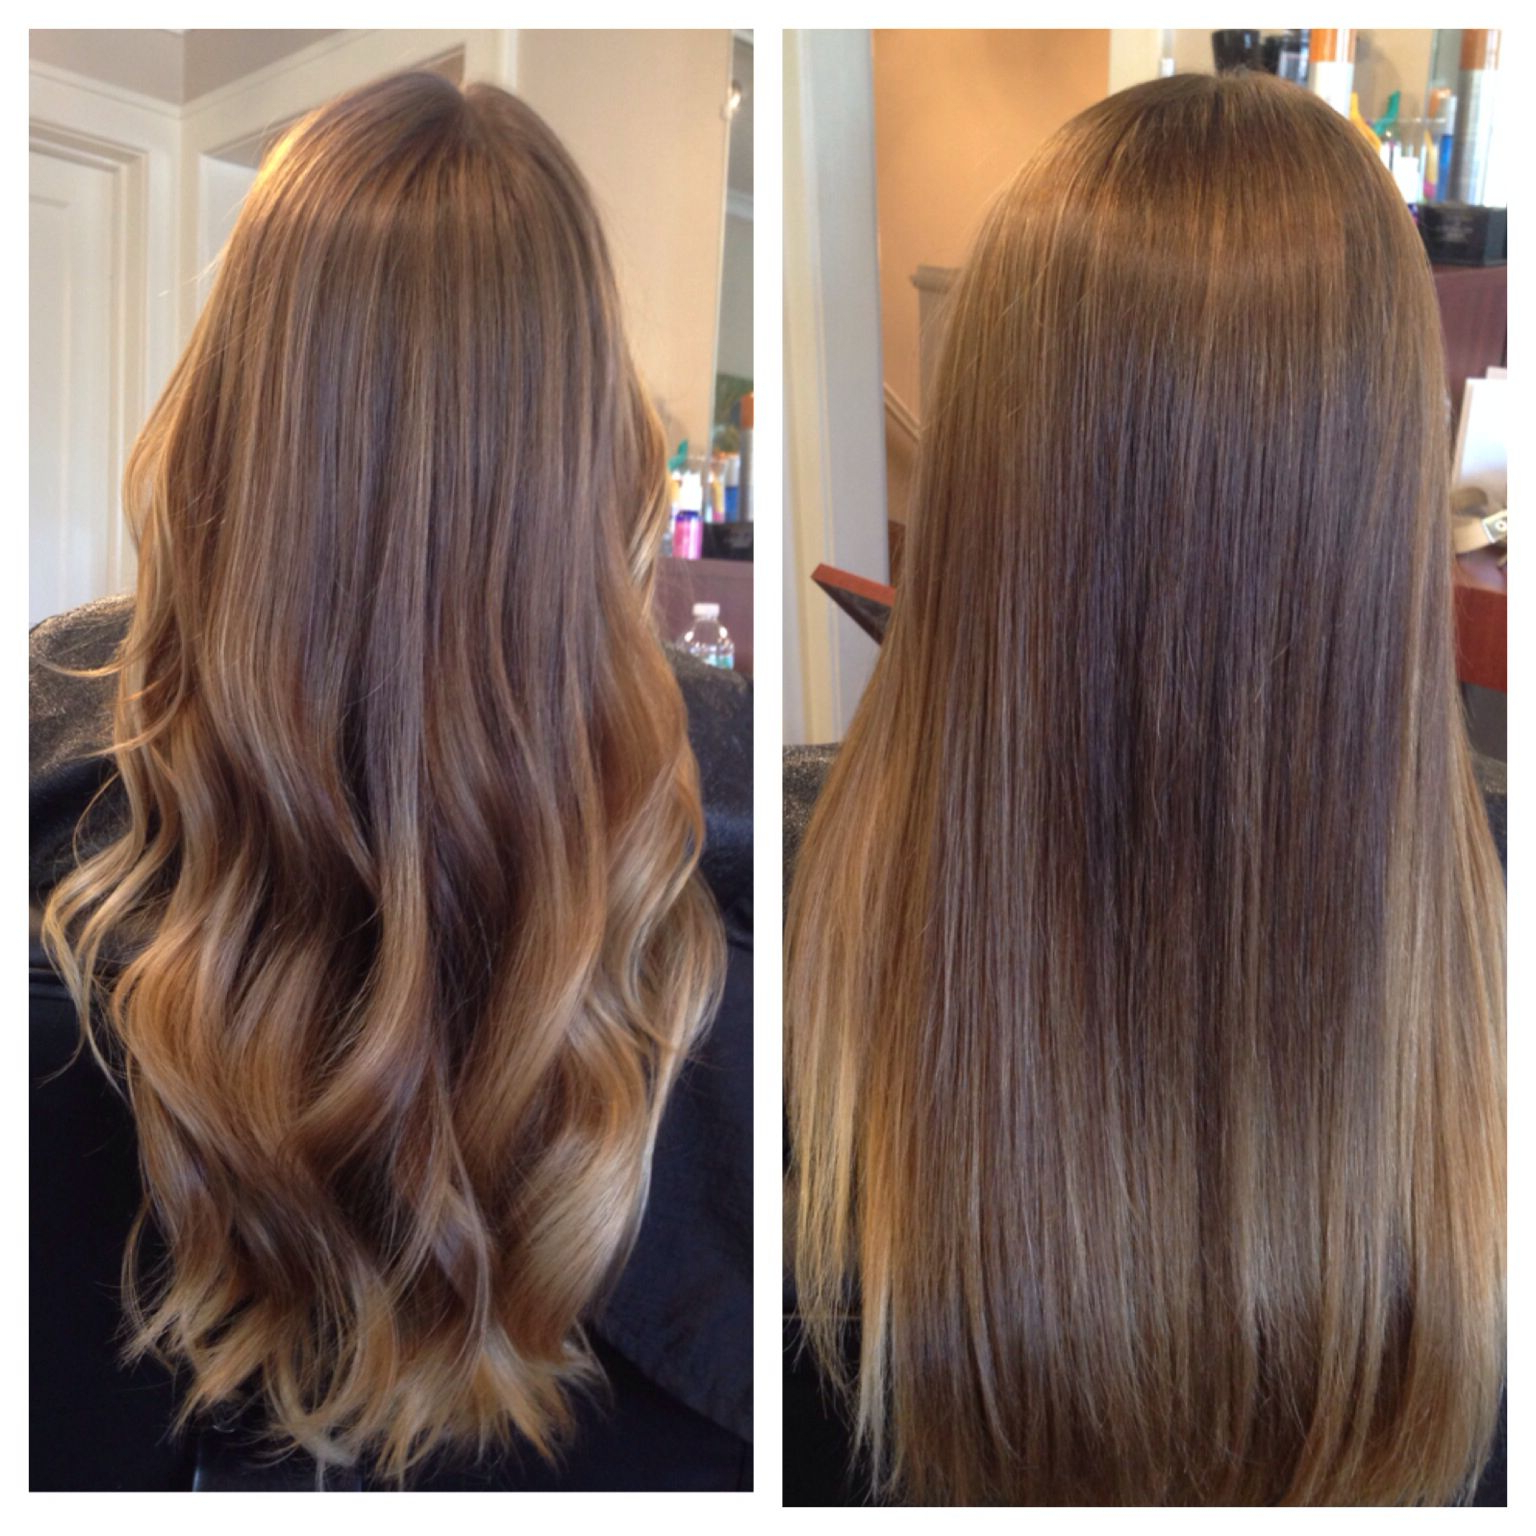 Balayage Ombre Done Well Means You Can Go Straight Or Wavy With Beachy Waves Hairstyles With Balayage Ombre (View 12 of 20)